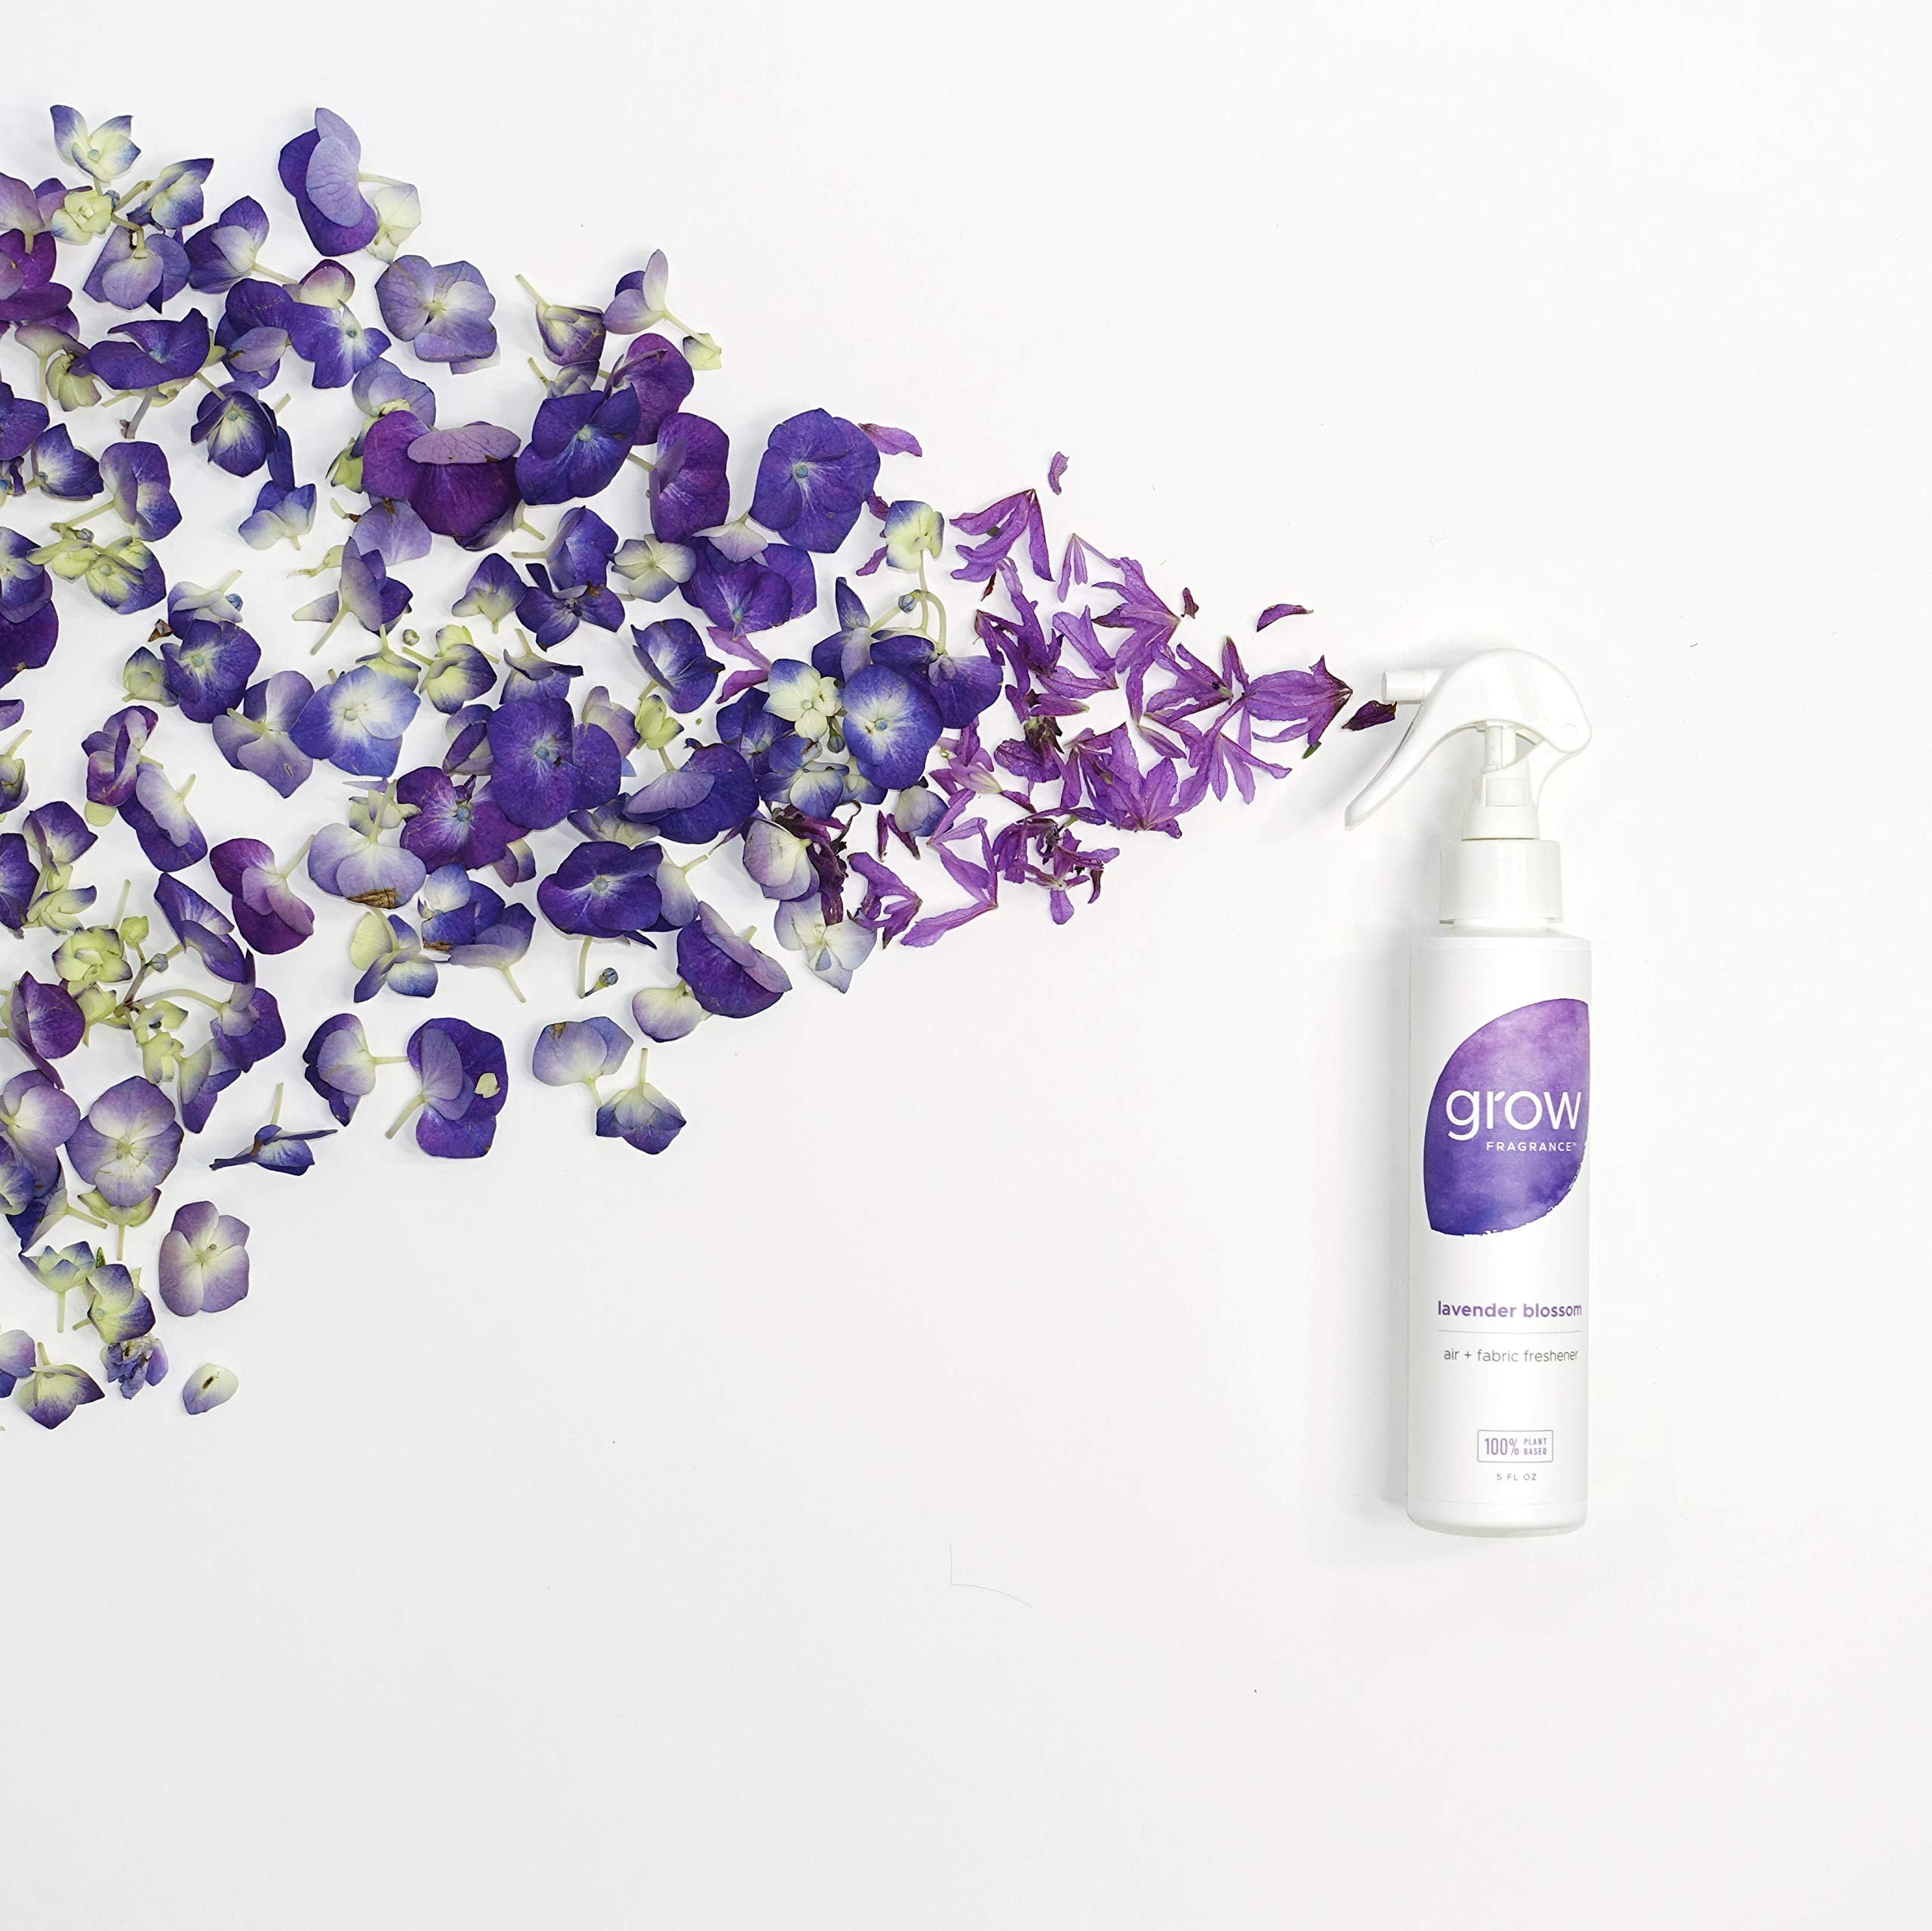 Grow Fragrance - Certified 100% Plant Based Air Freshener + Fabric Freshener Spray, Made With All Natural Essential Oils, Lavender Scent, 5 oz. (Pack of 2) by Grow Fragrance (Image #3)